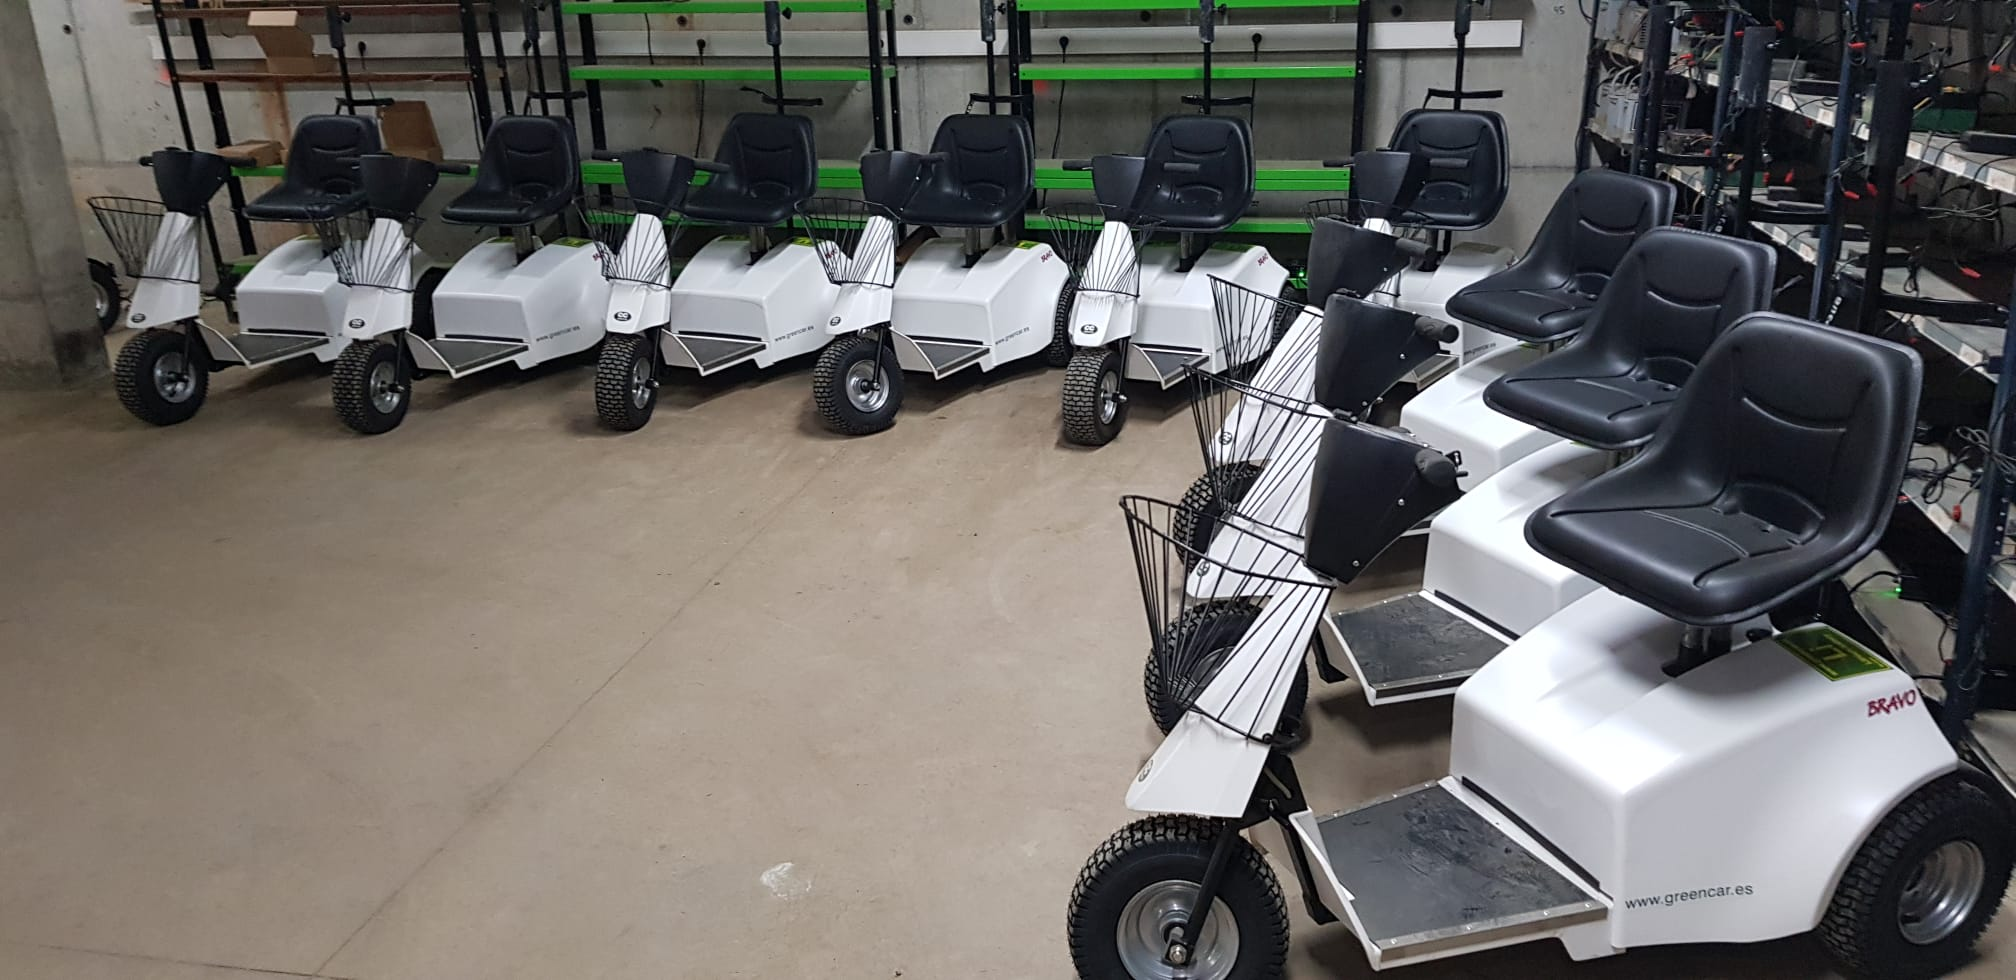 Flota moto single golf cart Real Club de Golf el Prat